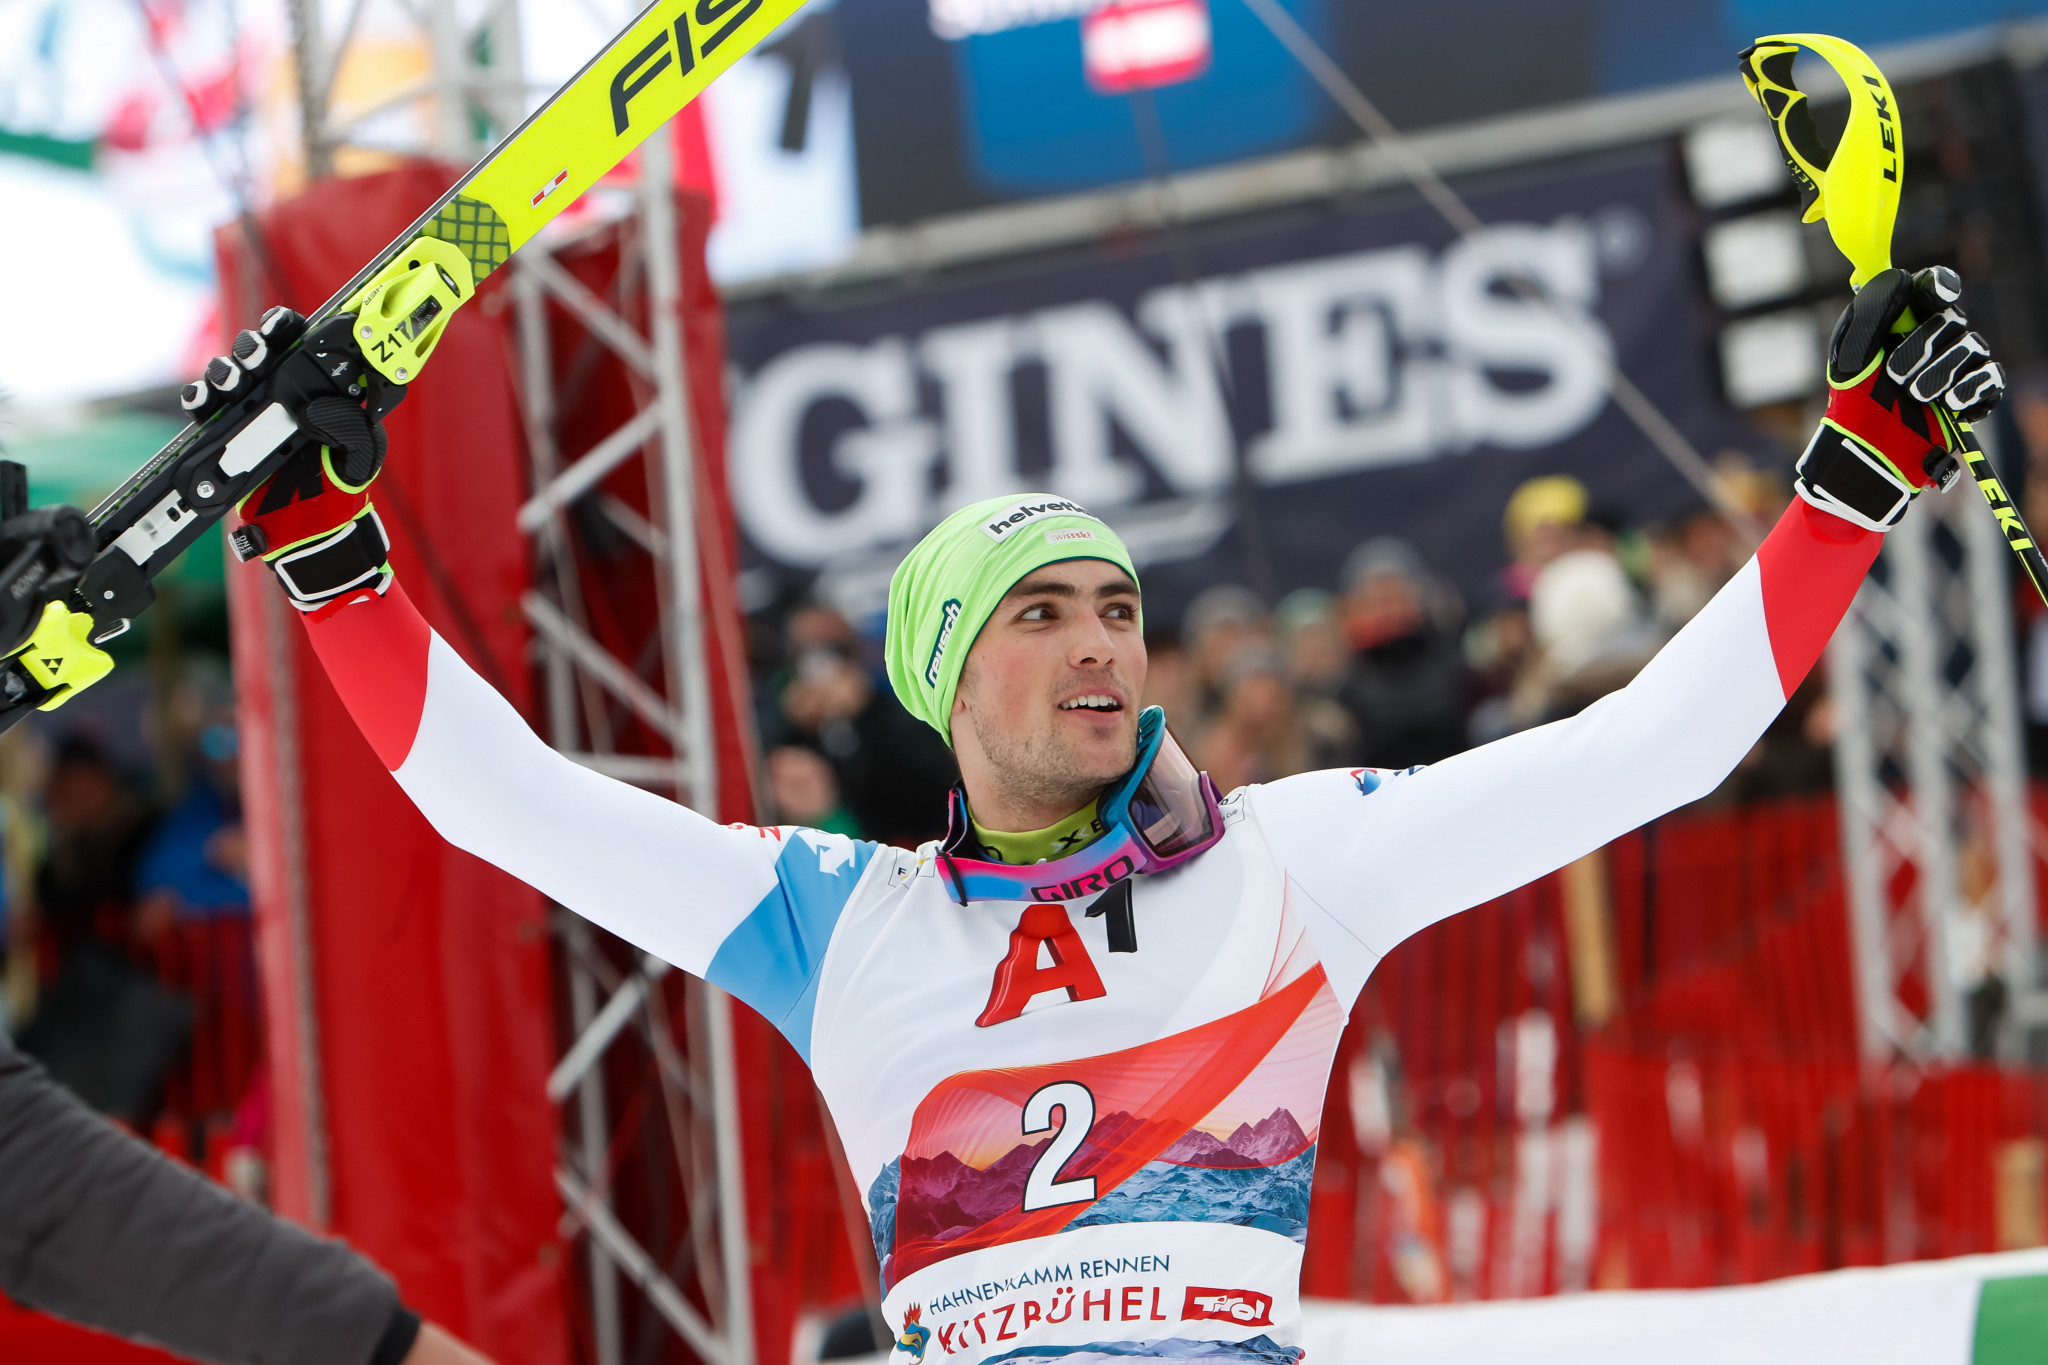 Yule wins men's slalom as FIS Alpine Ski World Cup in Kitzbühel concludes